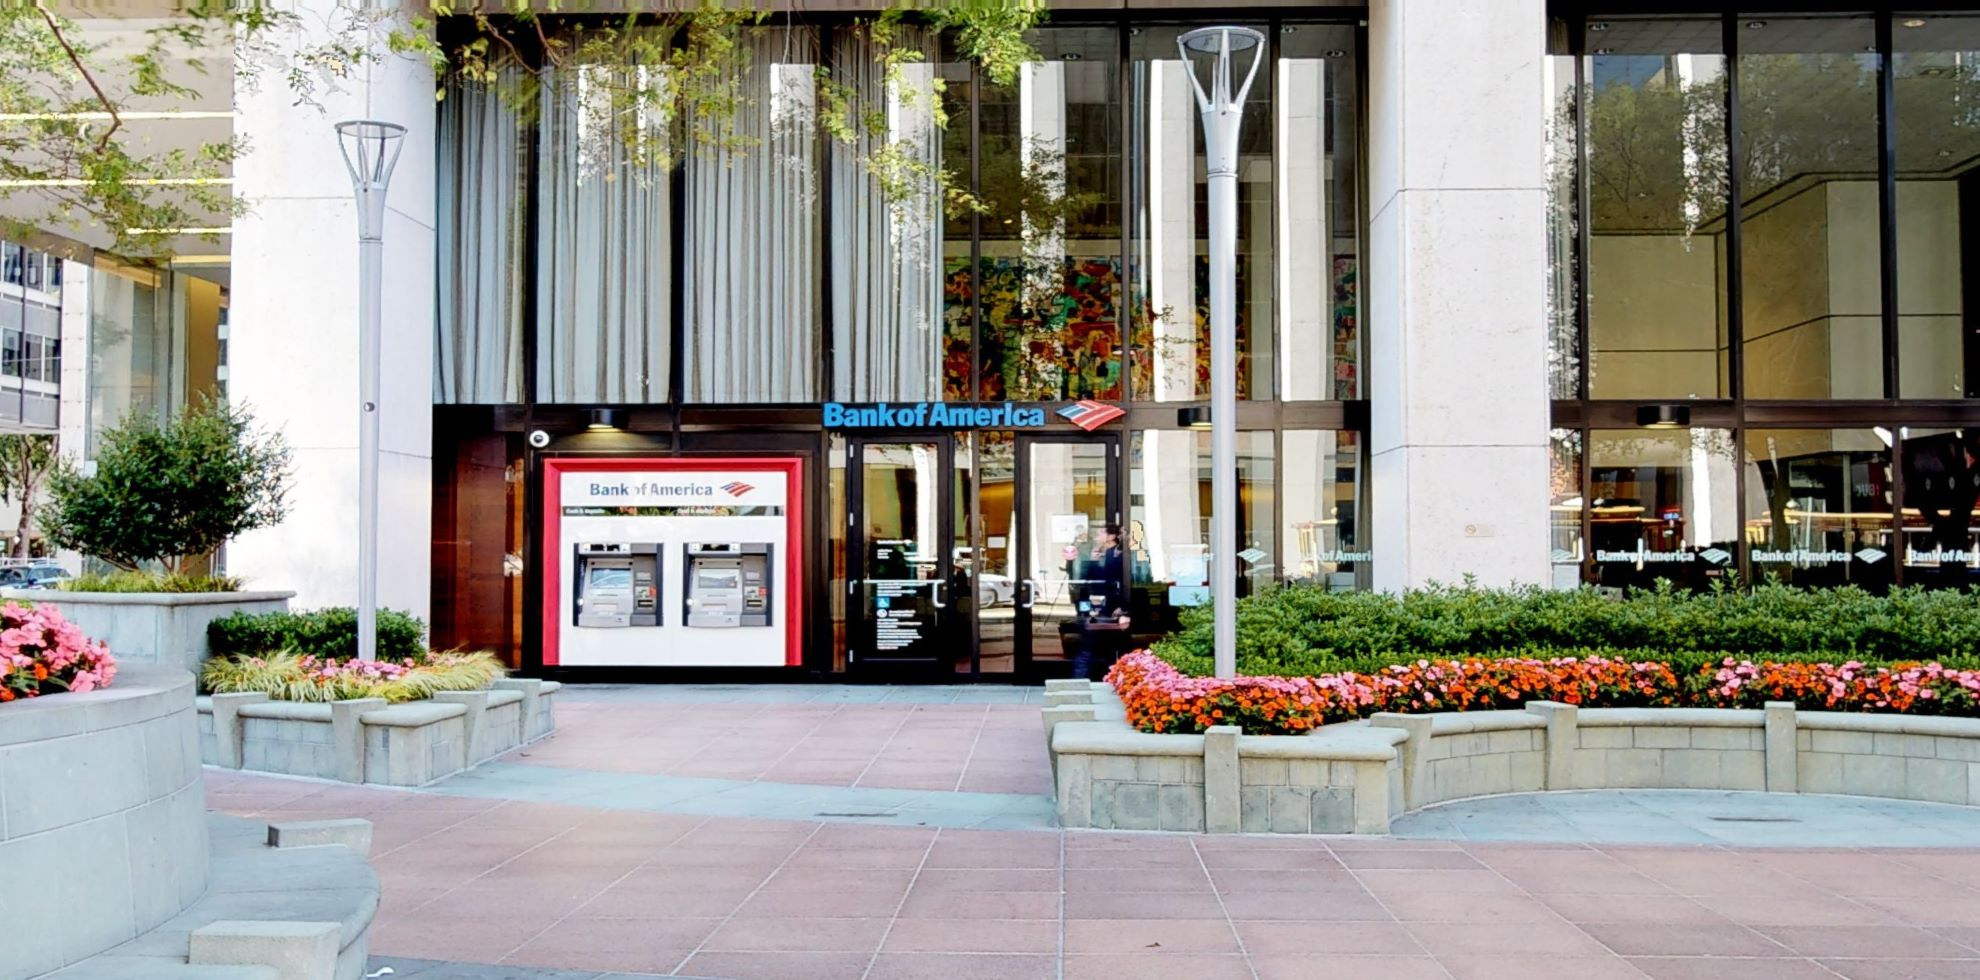 Bank of America financial center with walk-up ATM | 50 California St, San Francisco, CA 94111